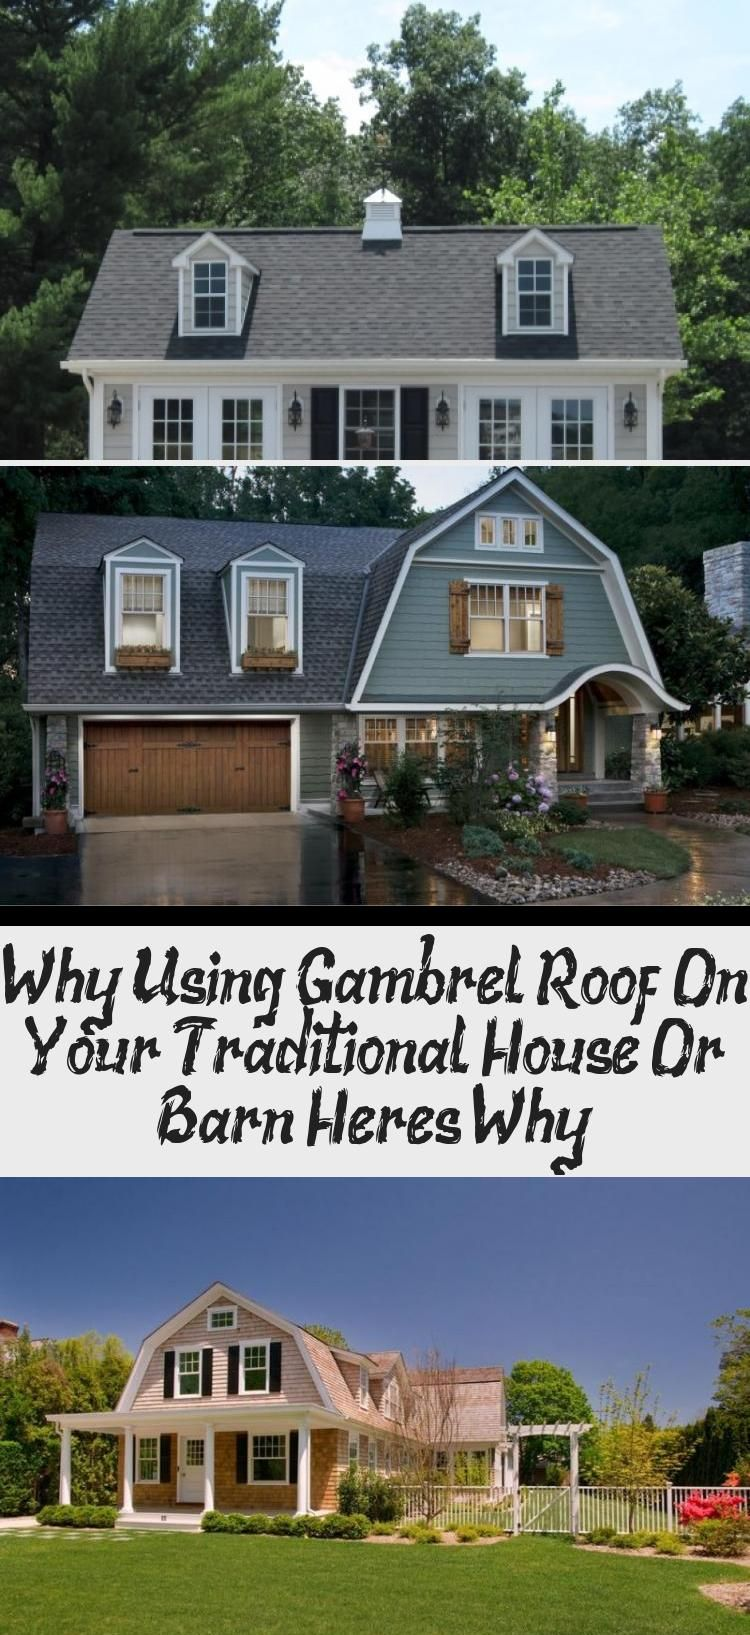 Find And Save Ideas About Gambrel Roof On Pinterest See More Ideas About Storage Building Homes Gambrel Barn And Small M In 2020 Gambrel Roof Gambrel Gambrel Style